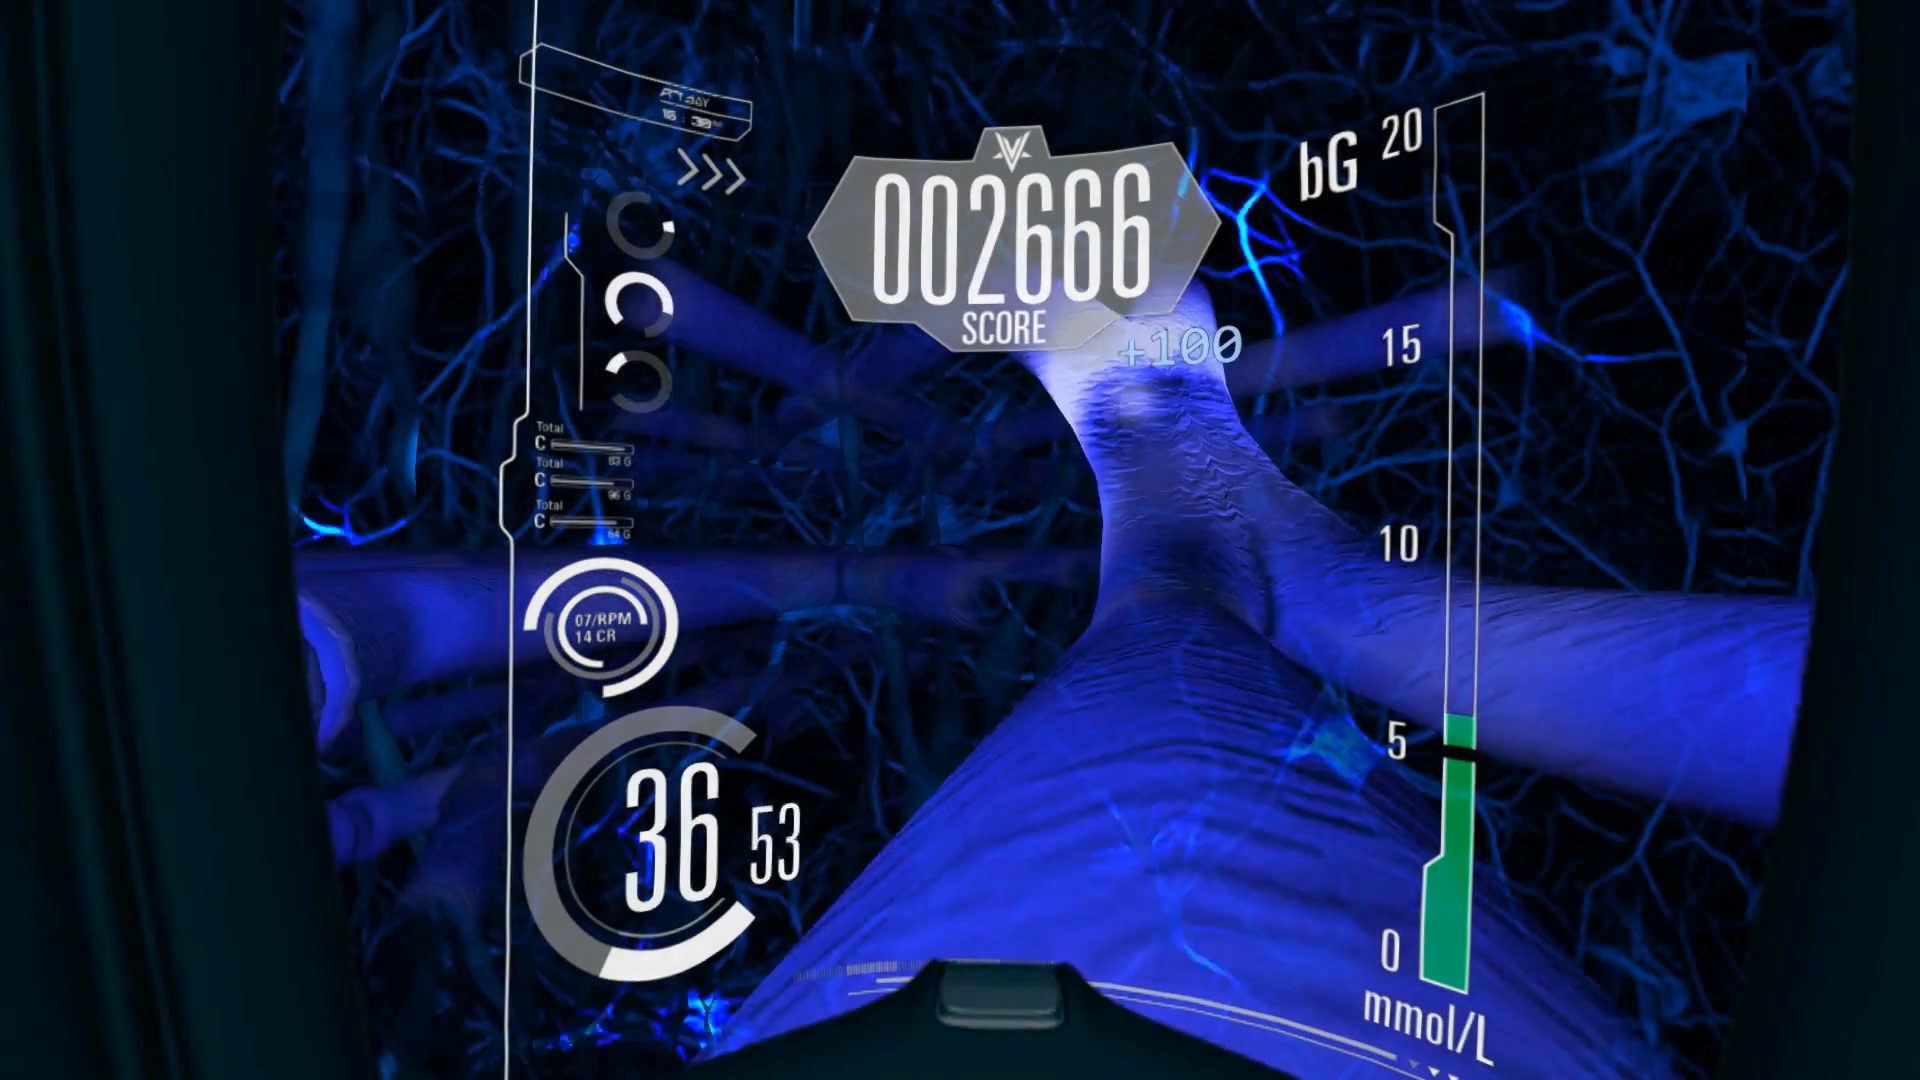 Diabetes Voyager VR Game, blue Brain Synapses scene with graphic overlay and game score display